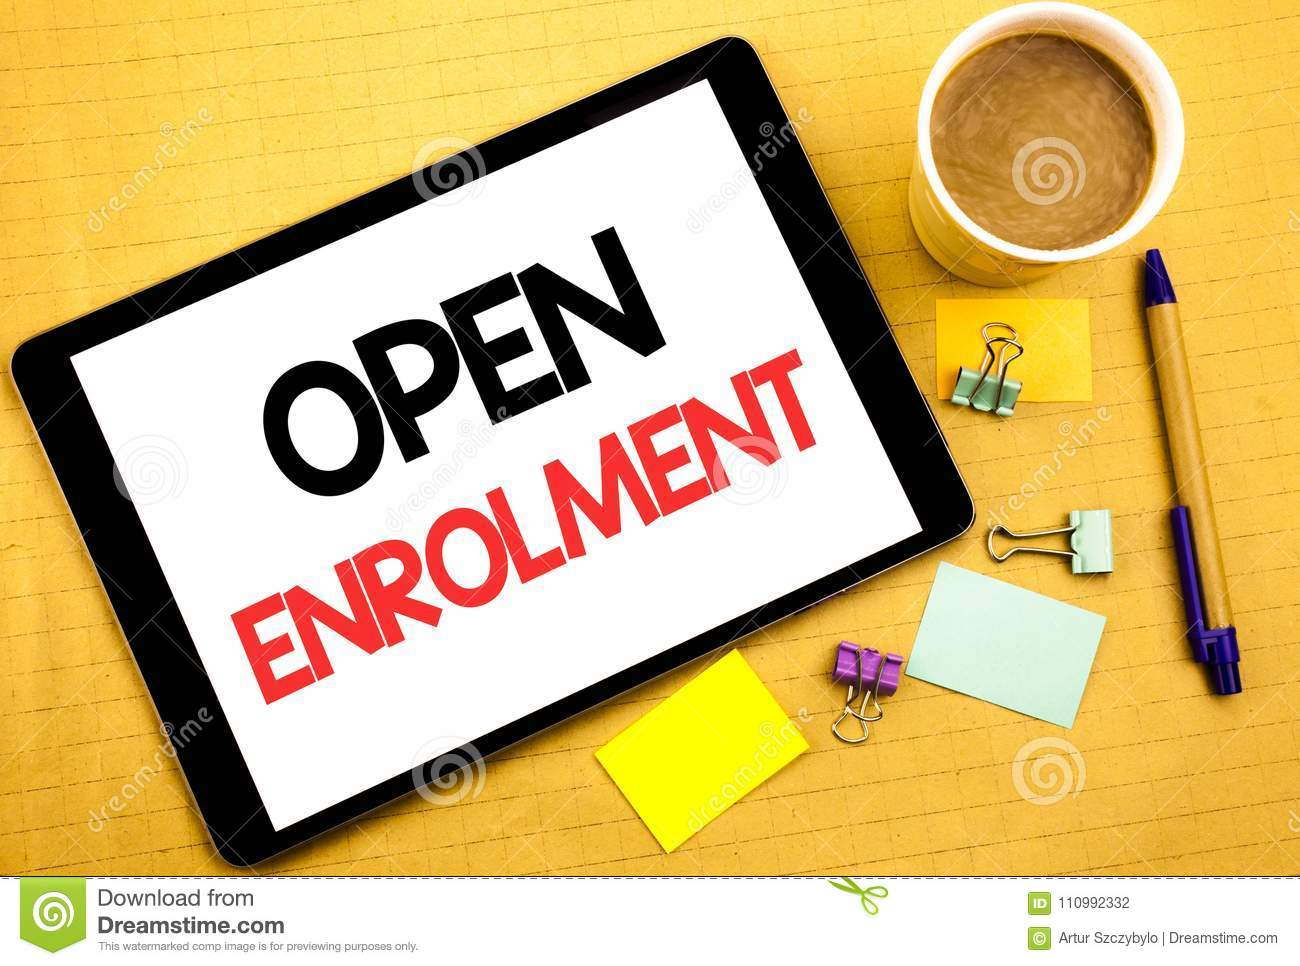 Conceptual hand writing text caption showing Open Enrolment. Business concept for Medicine Doctor Enroll Written on tablet laptop,